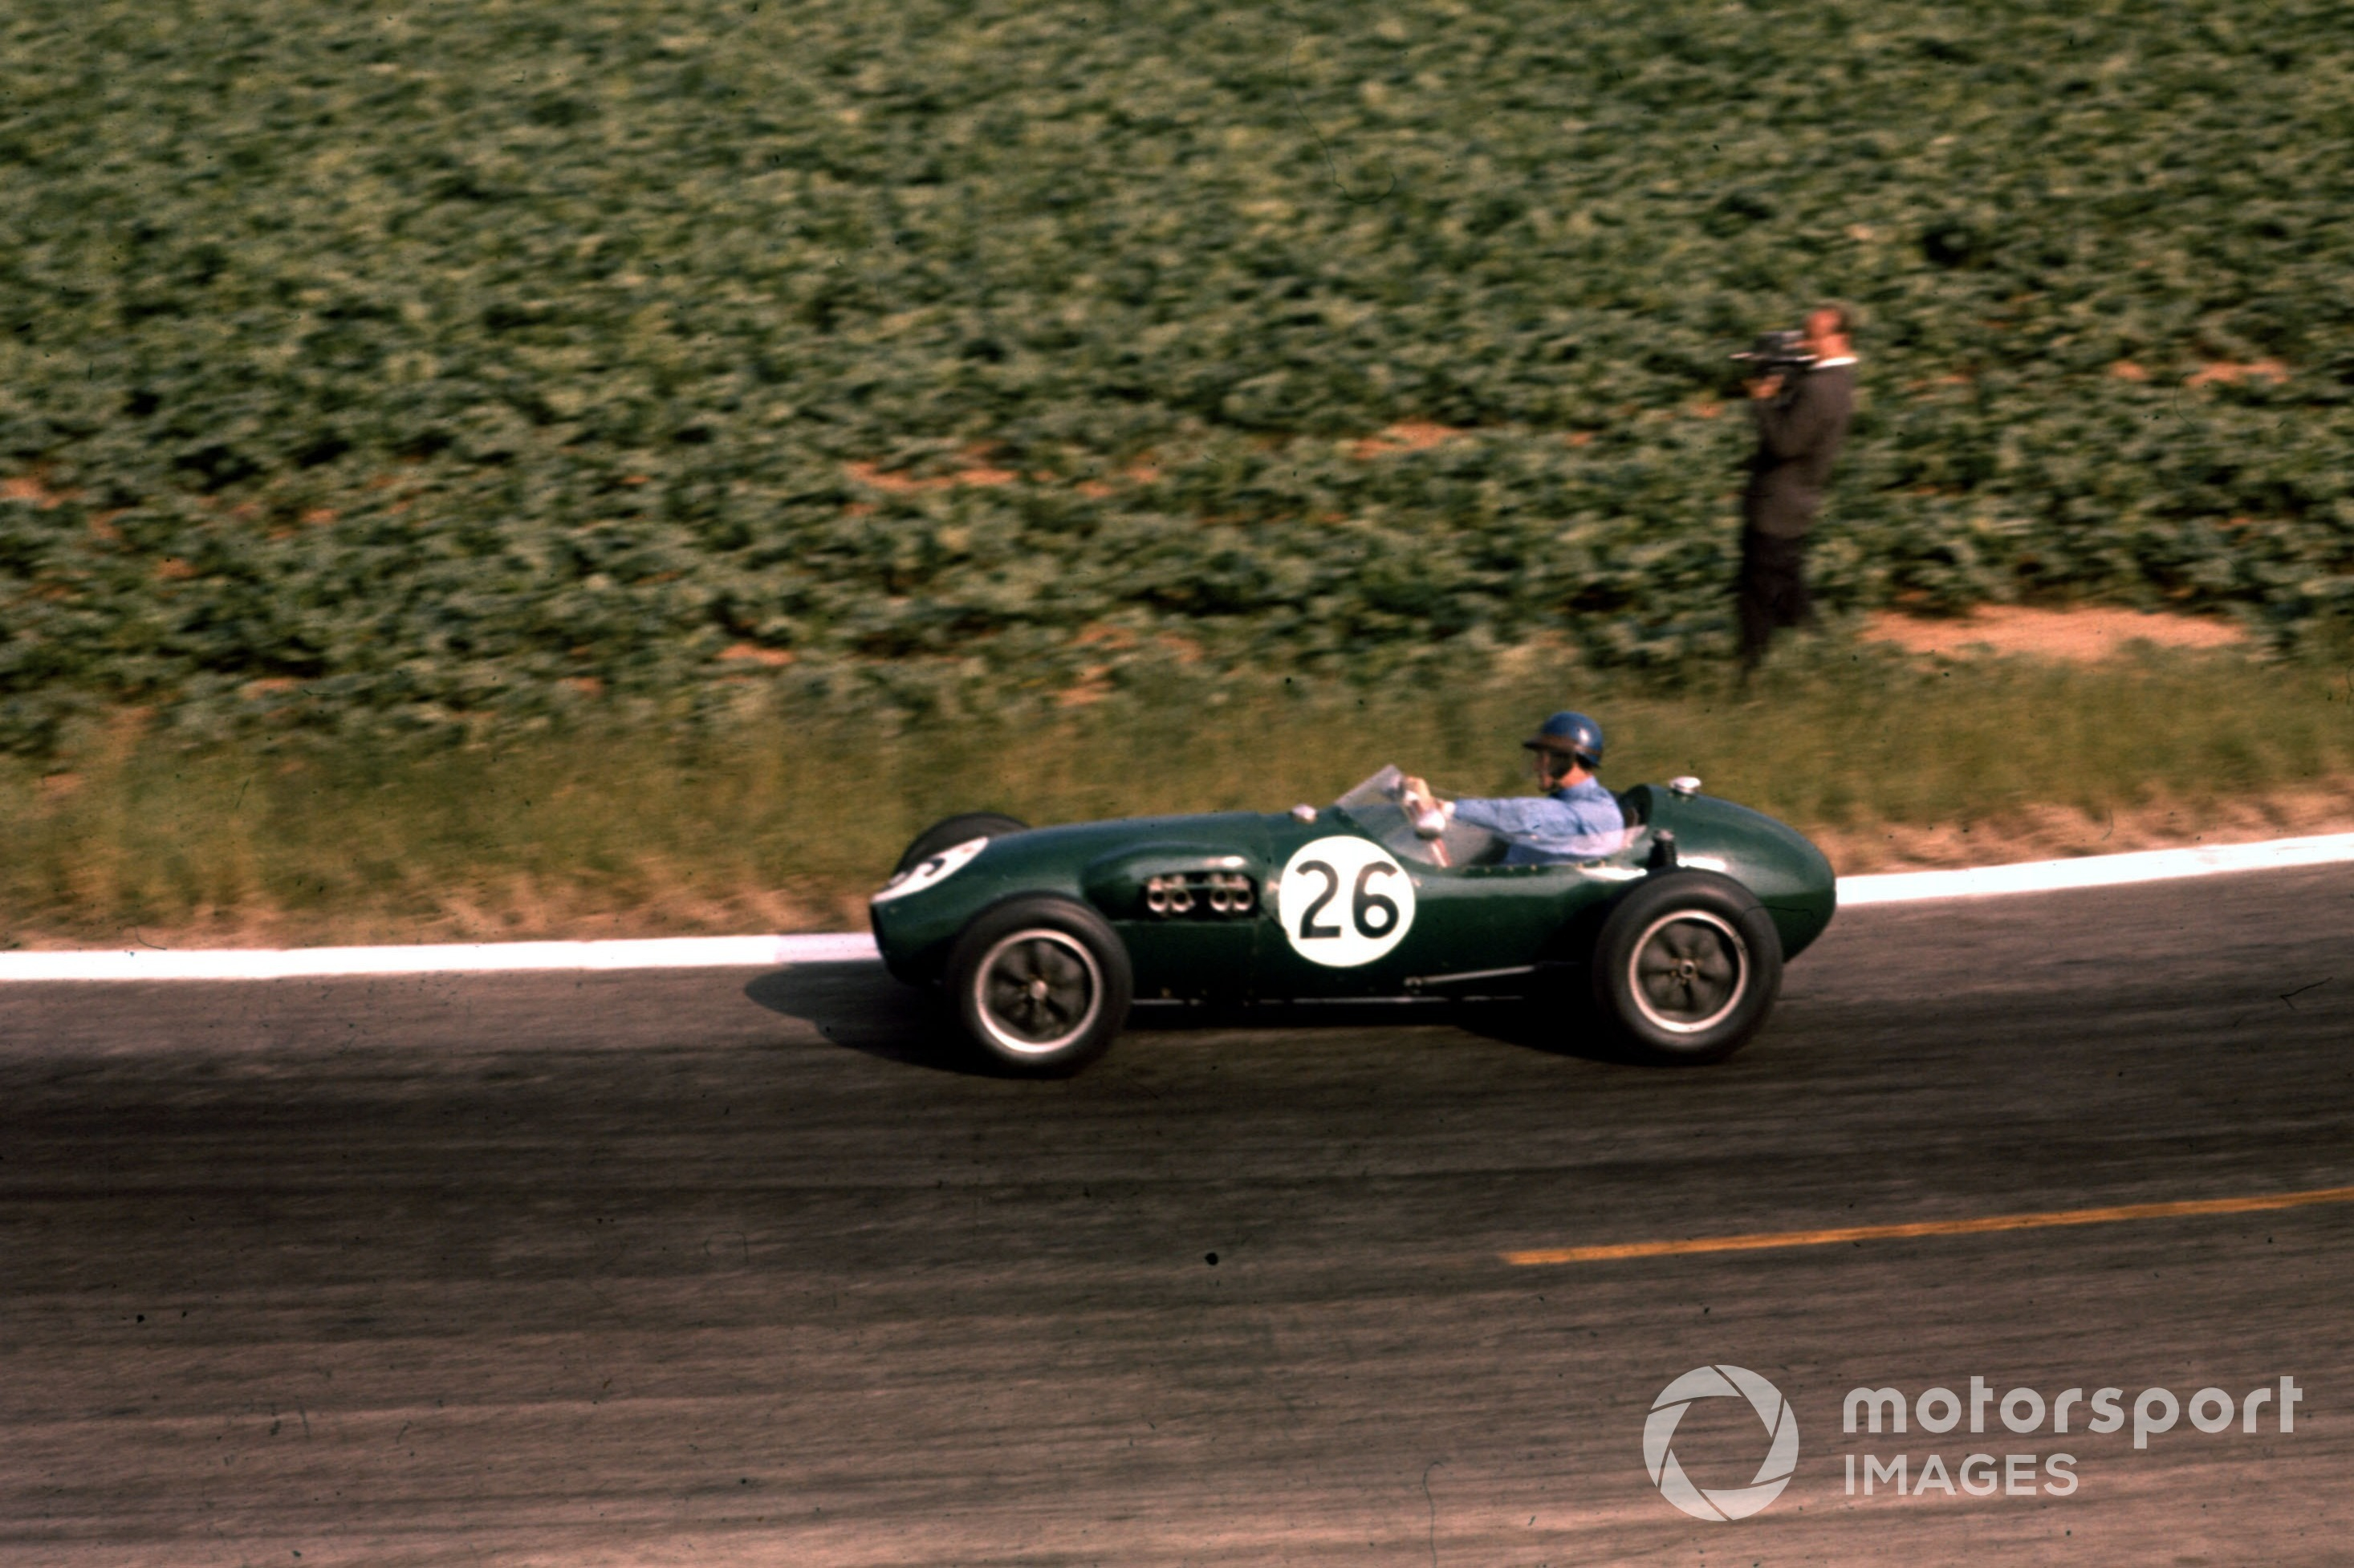 Cliff Allison in the Lotus-Climax 12 at the 1958 French GP